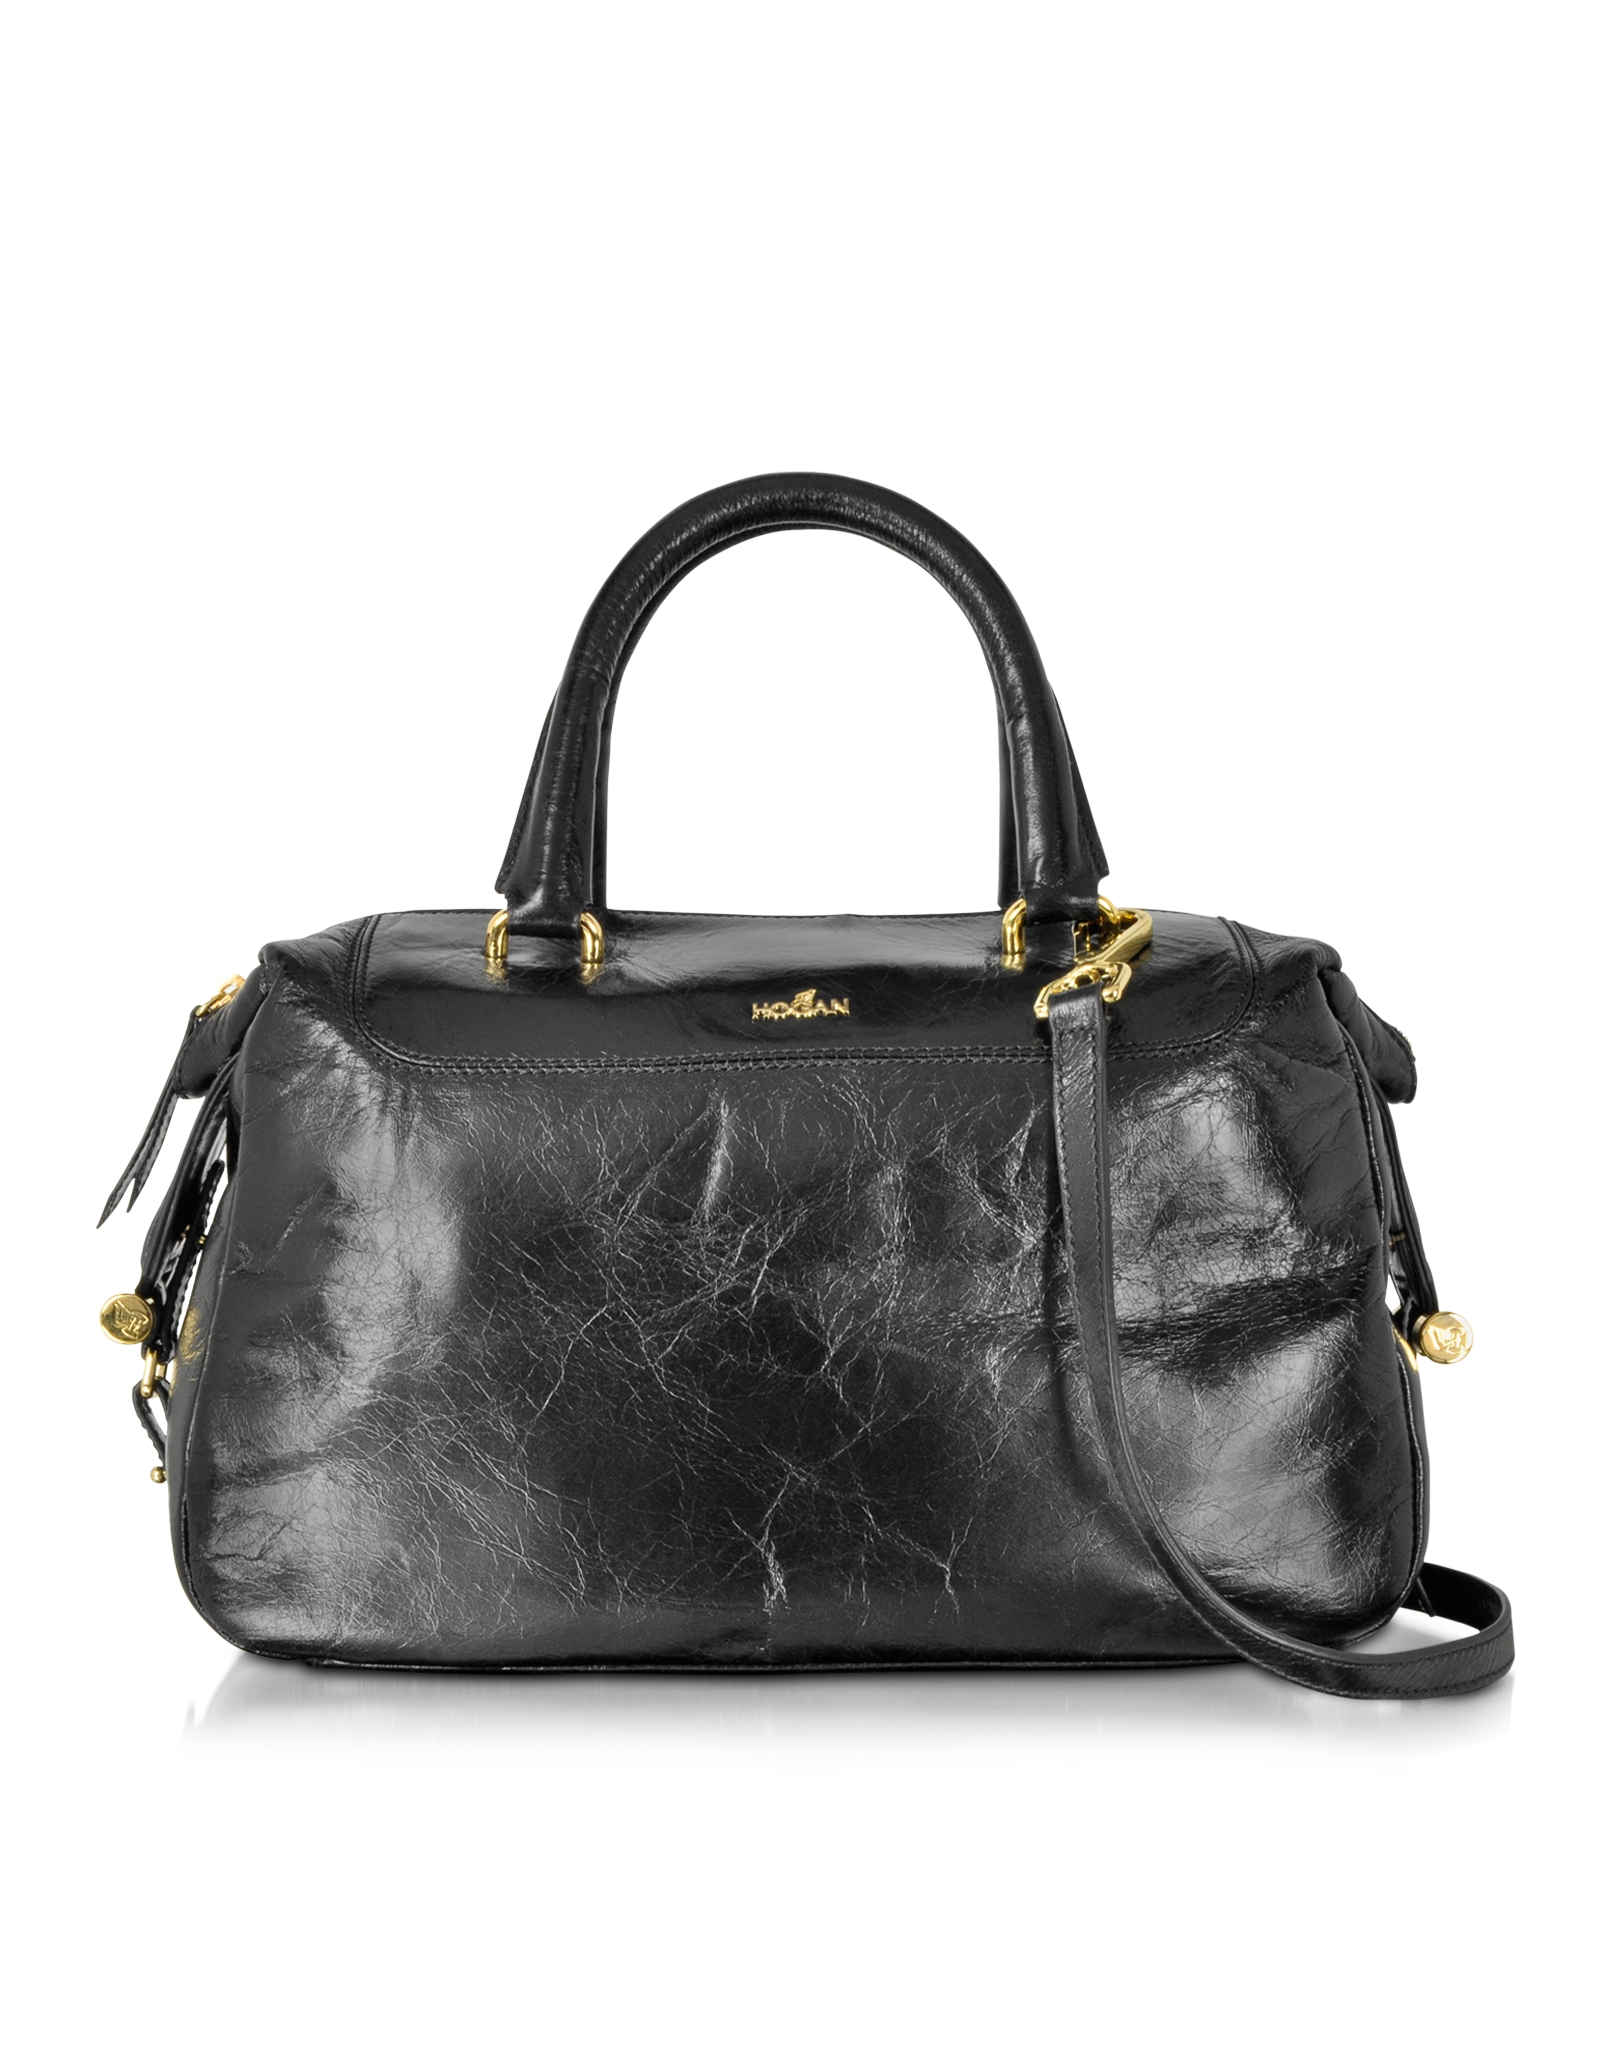 Lyst - Hogan Leather Satchel Bag W shoulder Strap in Black 185dbf8b680ca